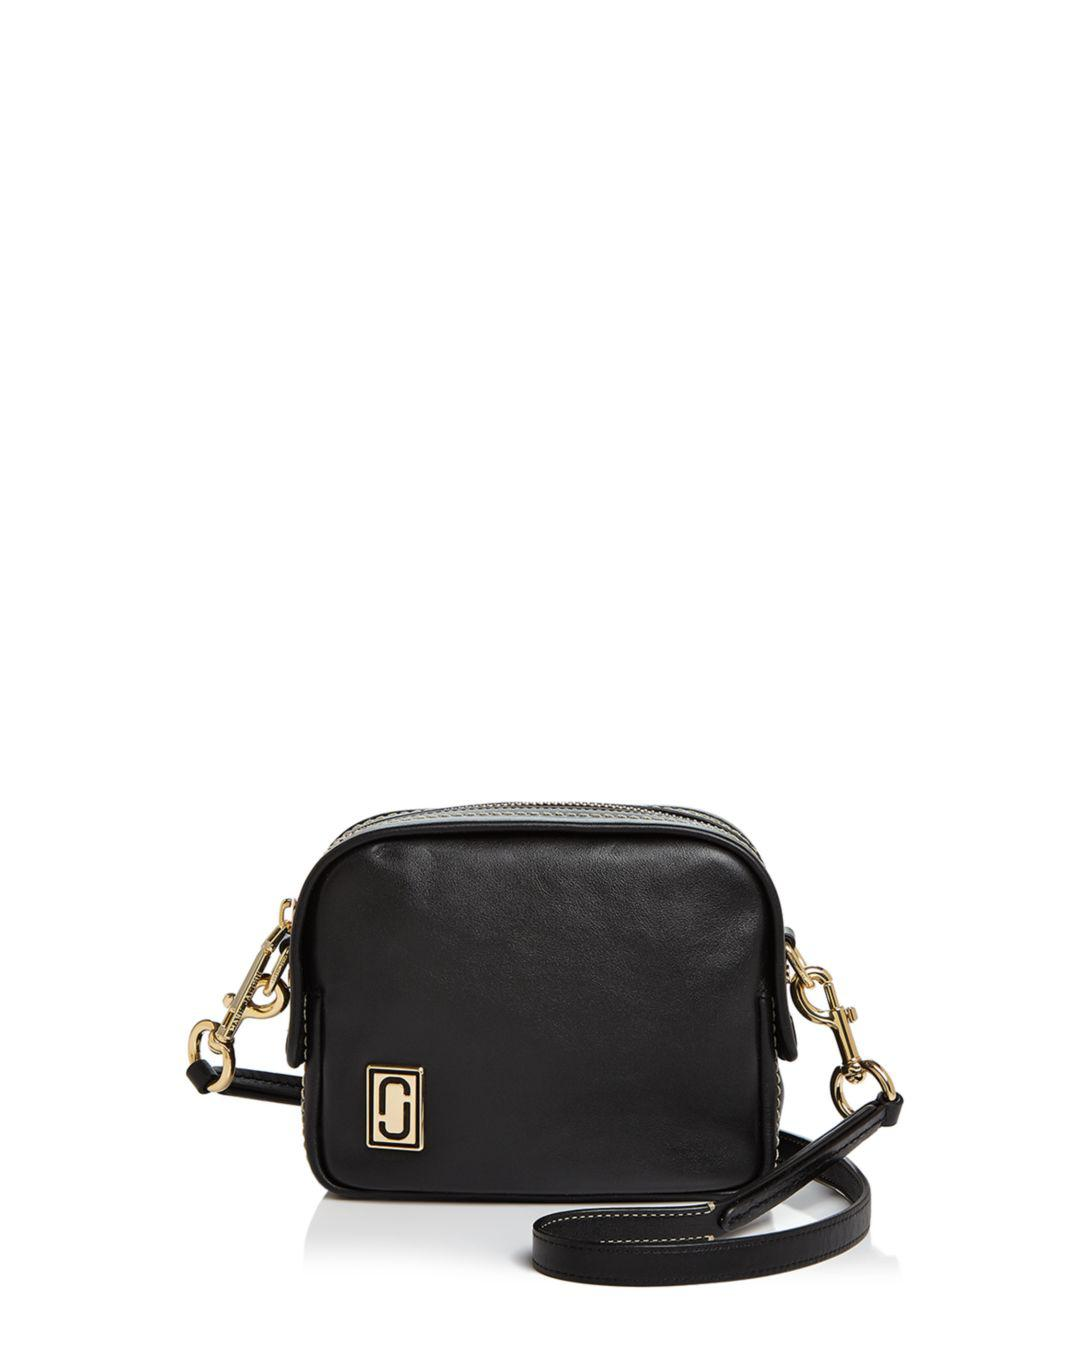 c9ba47719519 Lyst - Marc Jacobs The Mini Squeeze Leather Crossbody Bag in Black ...